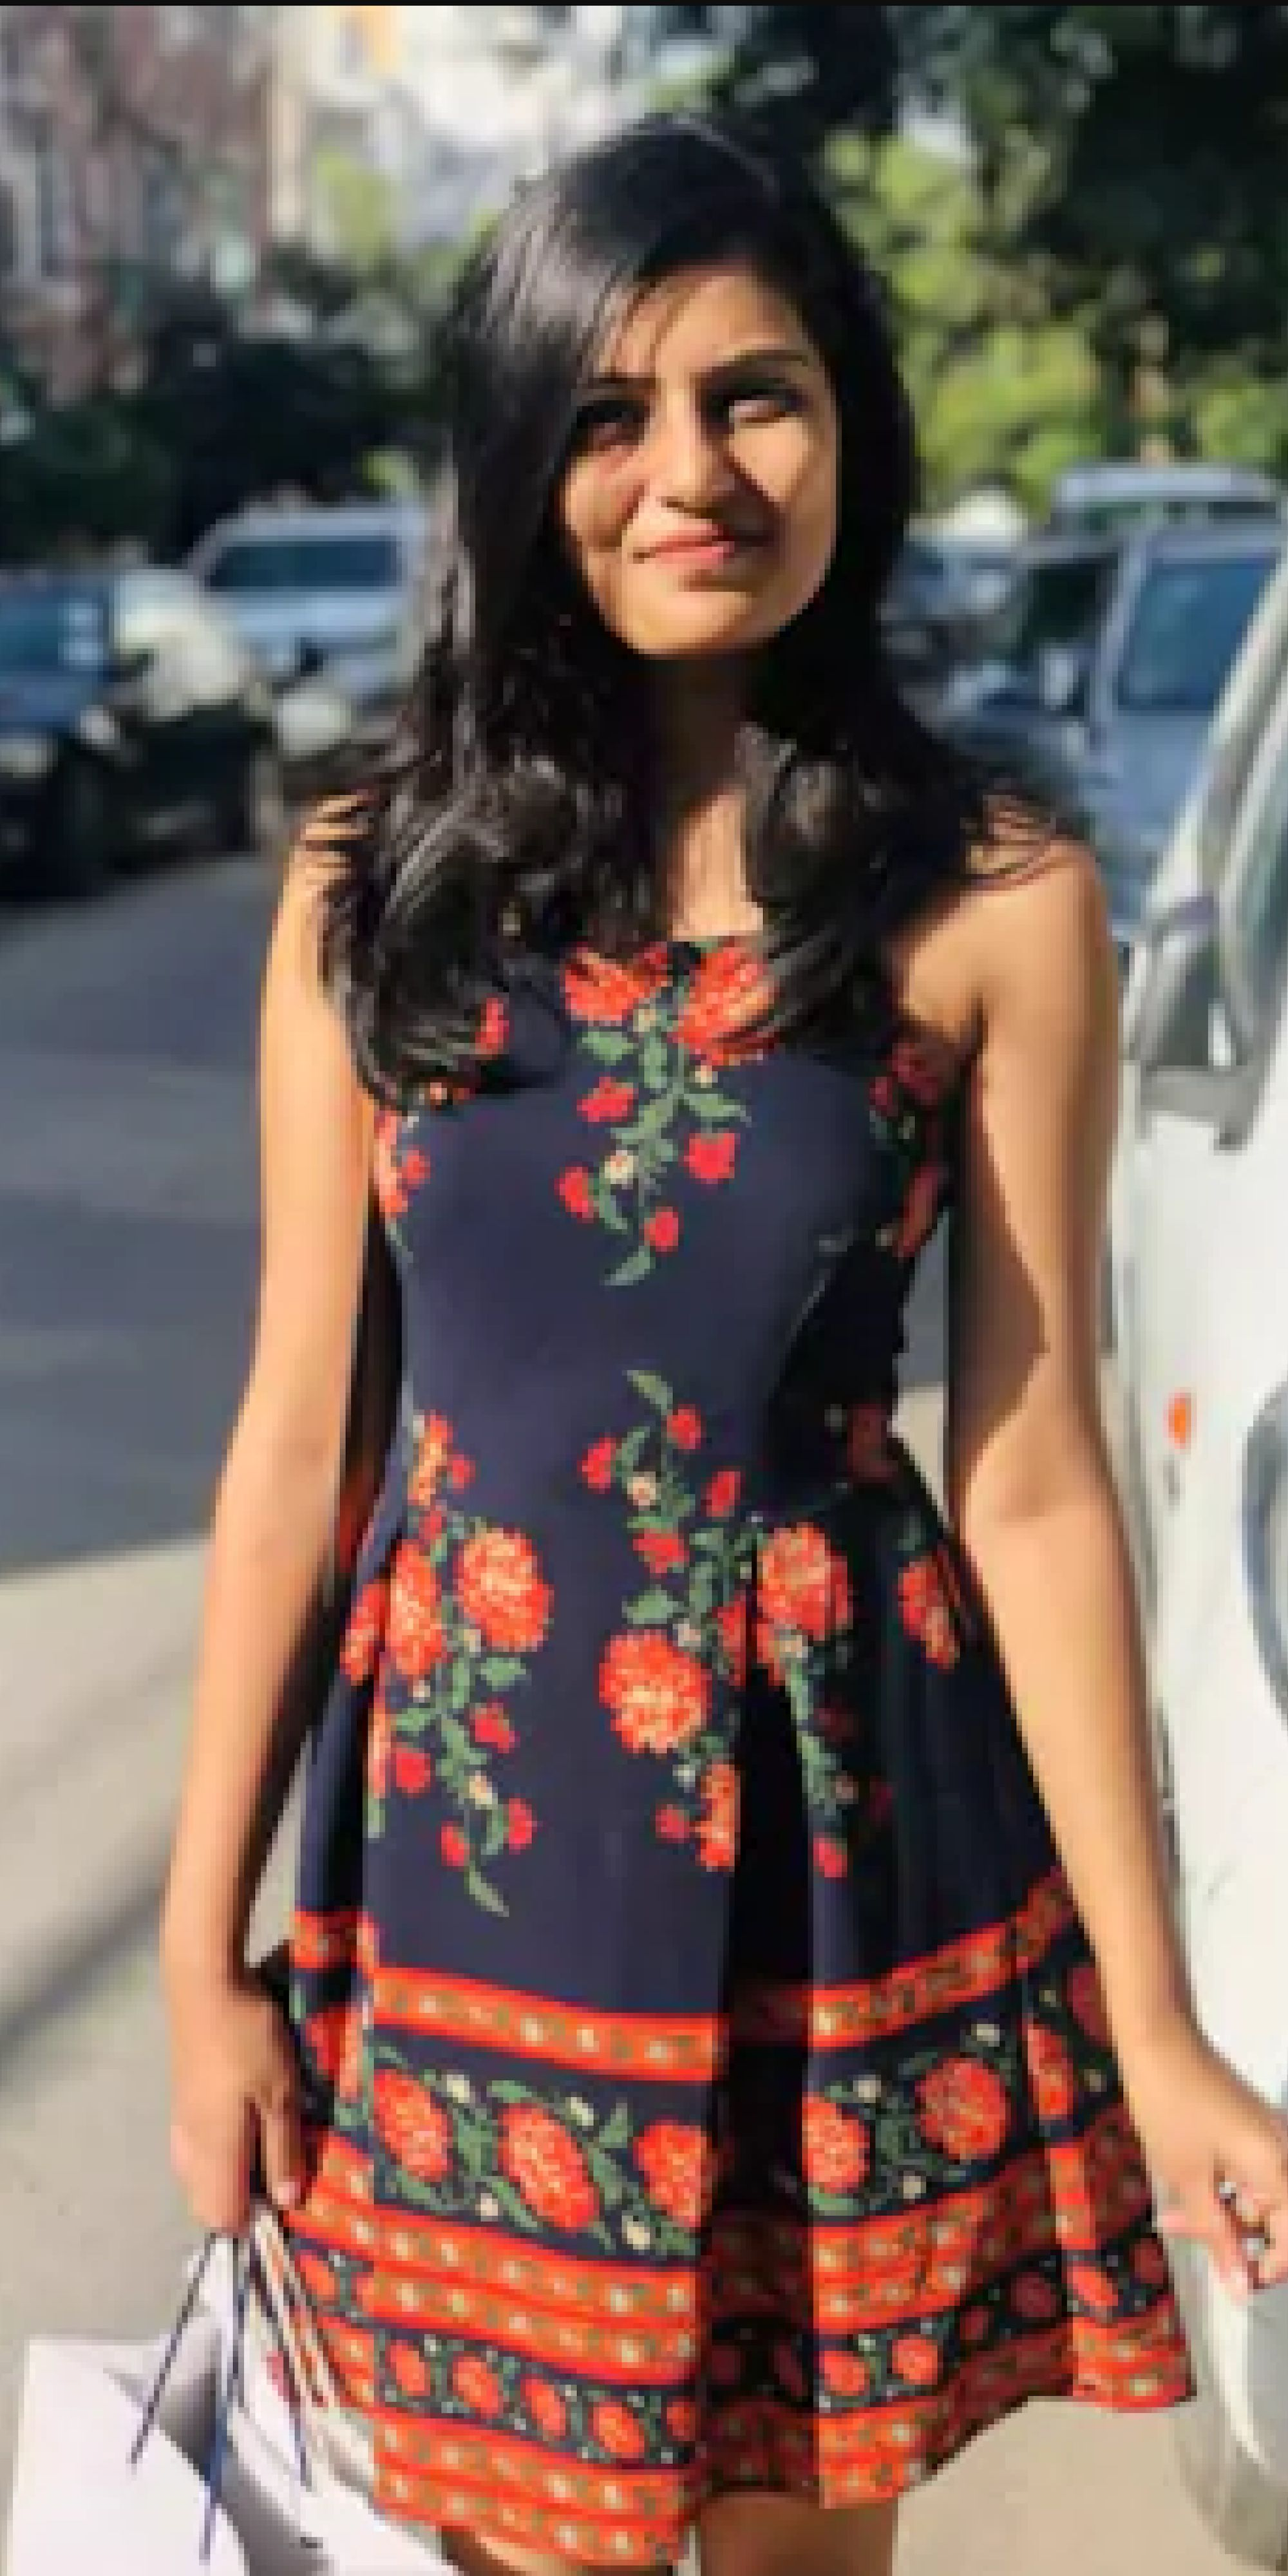 4b83dfbb2ab Sundress fever strikes again! With beautiful floral patterns